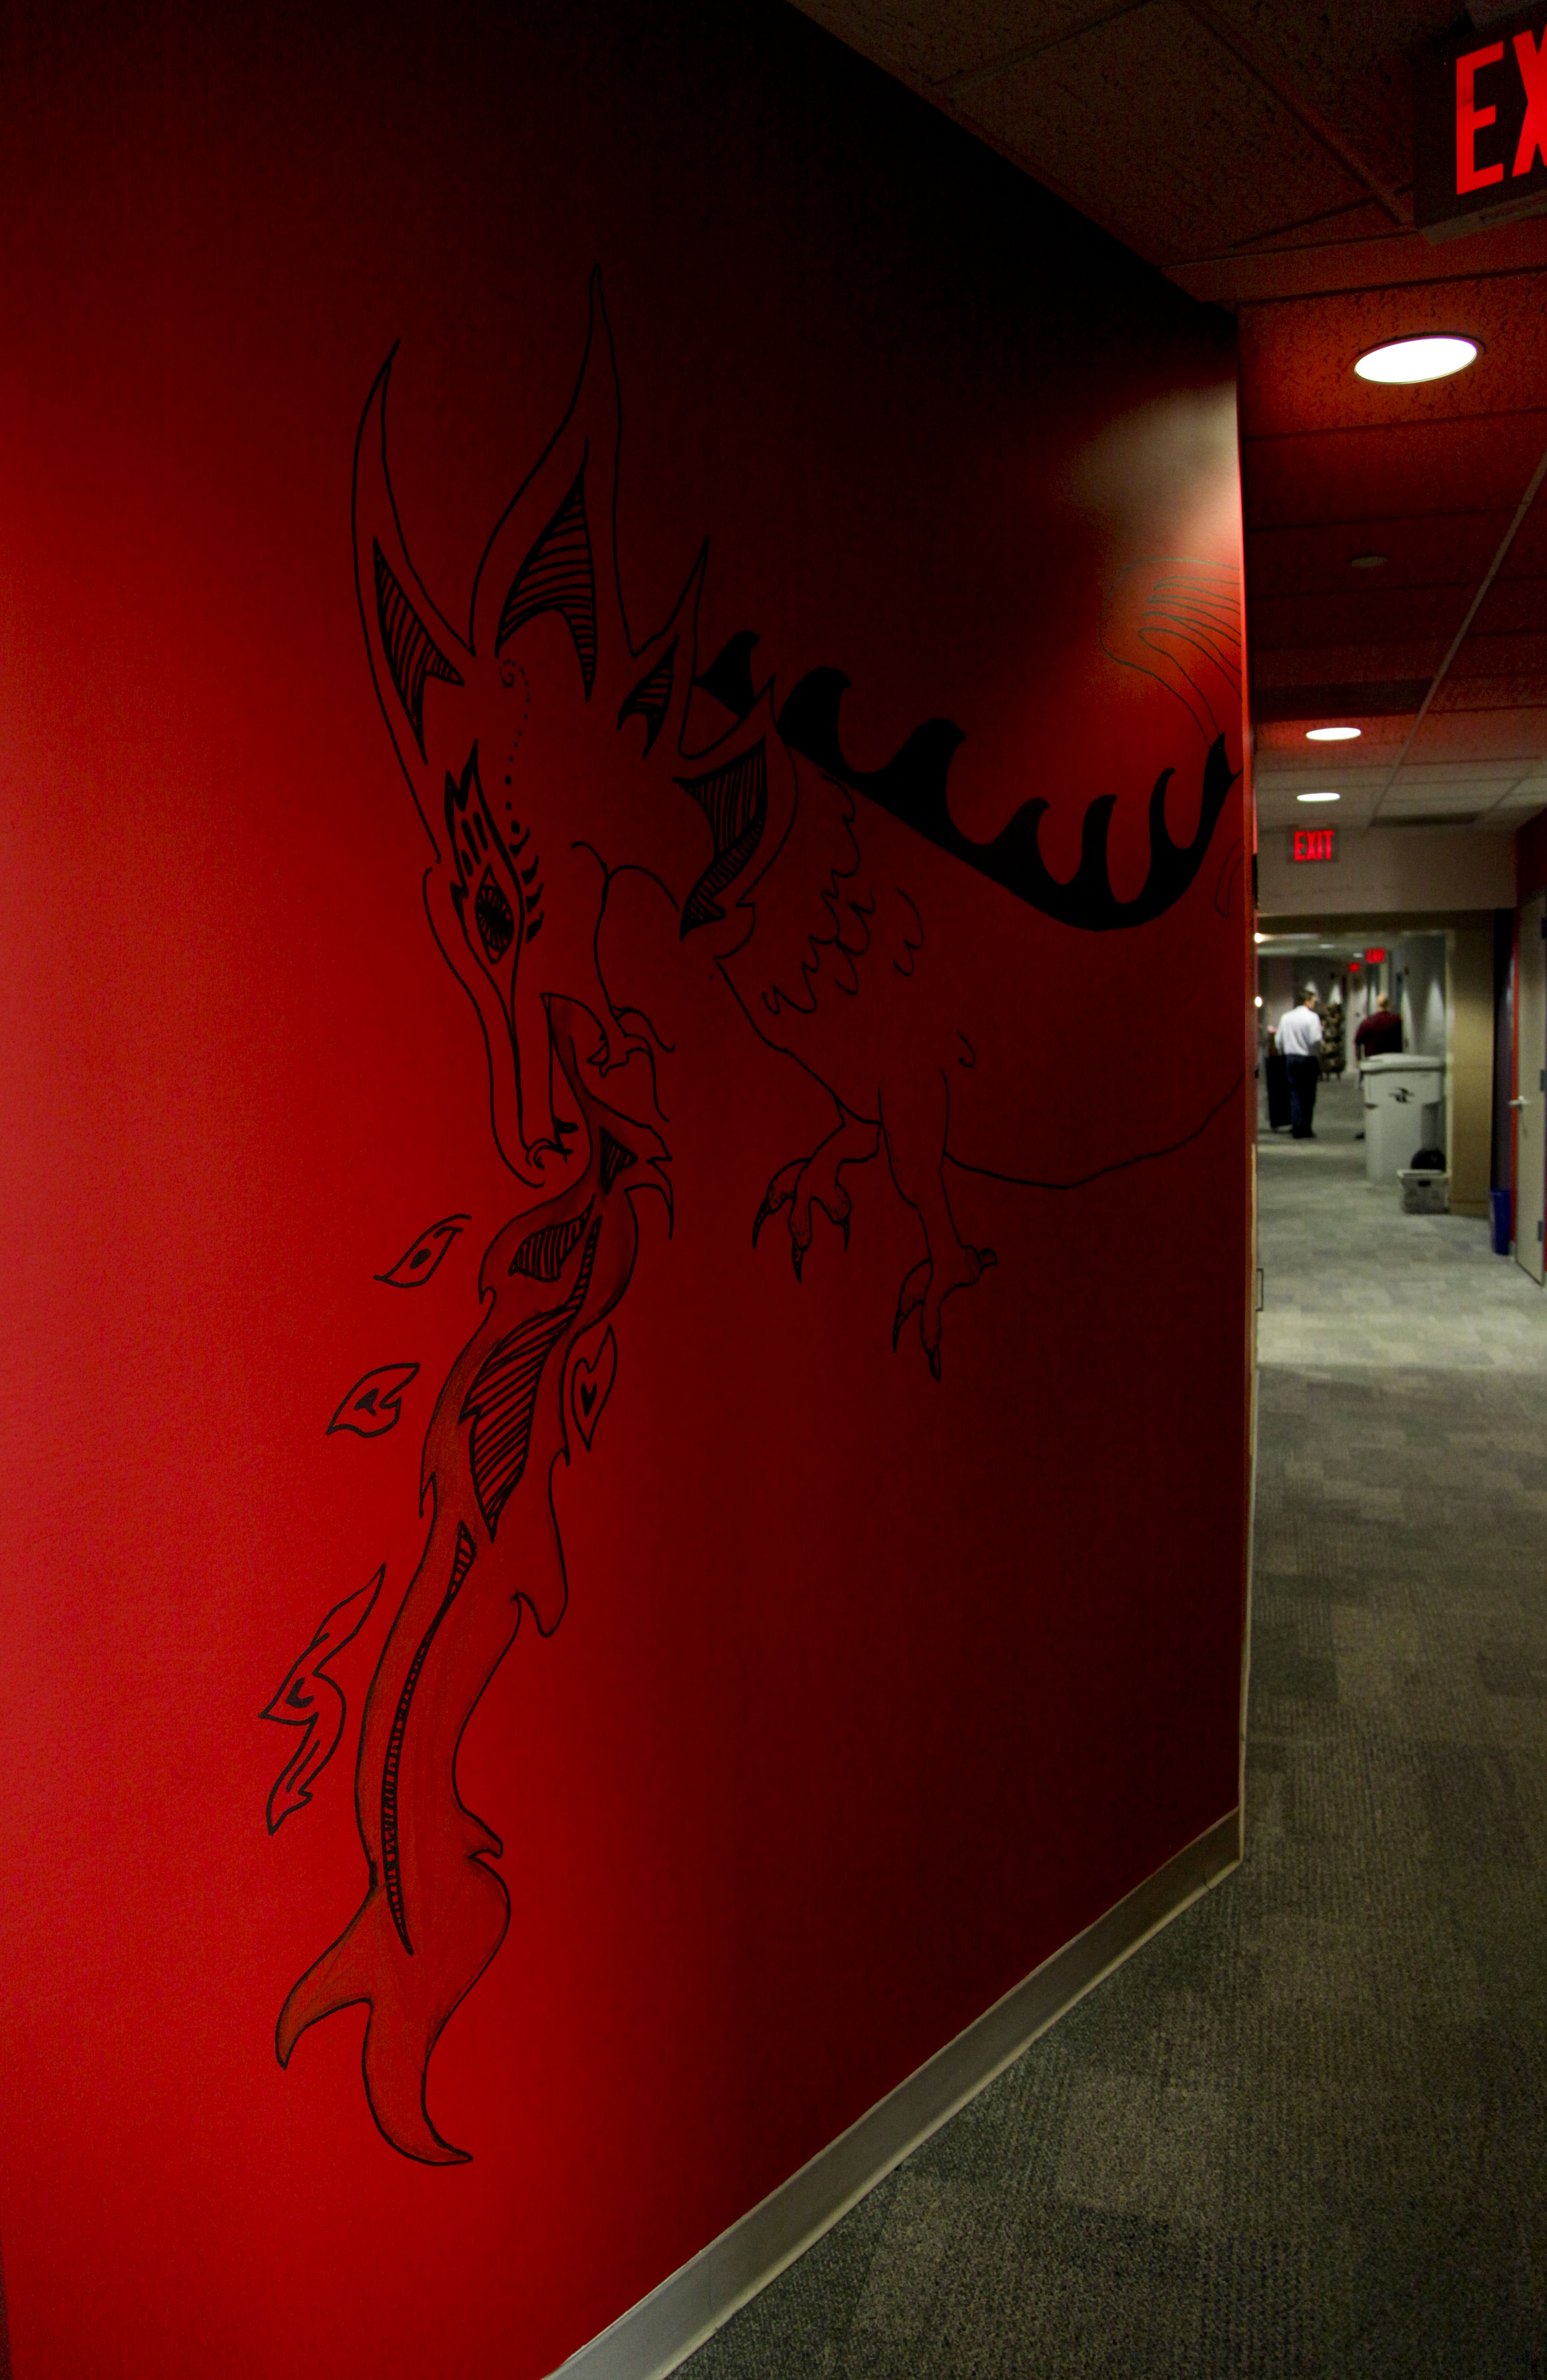 The NPR Music dragon guards the hallway.